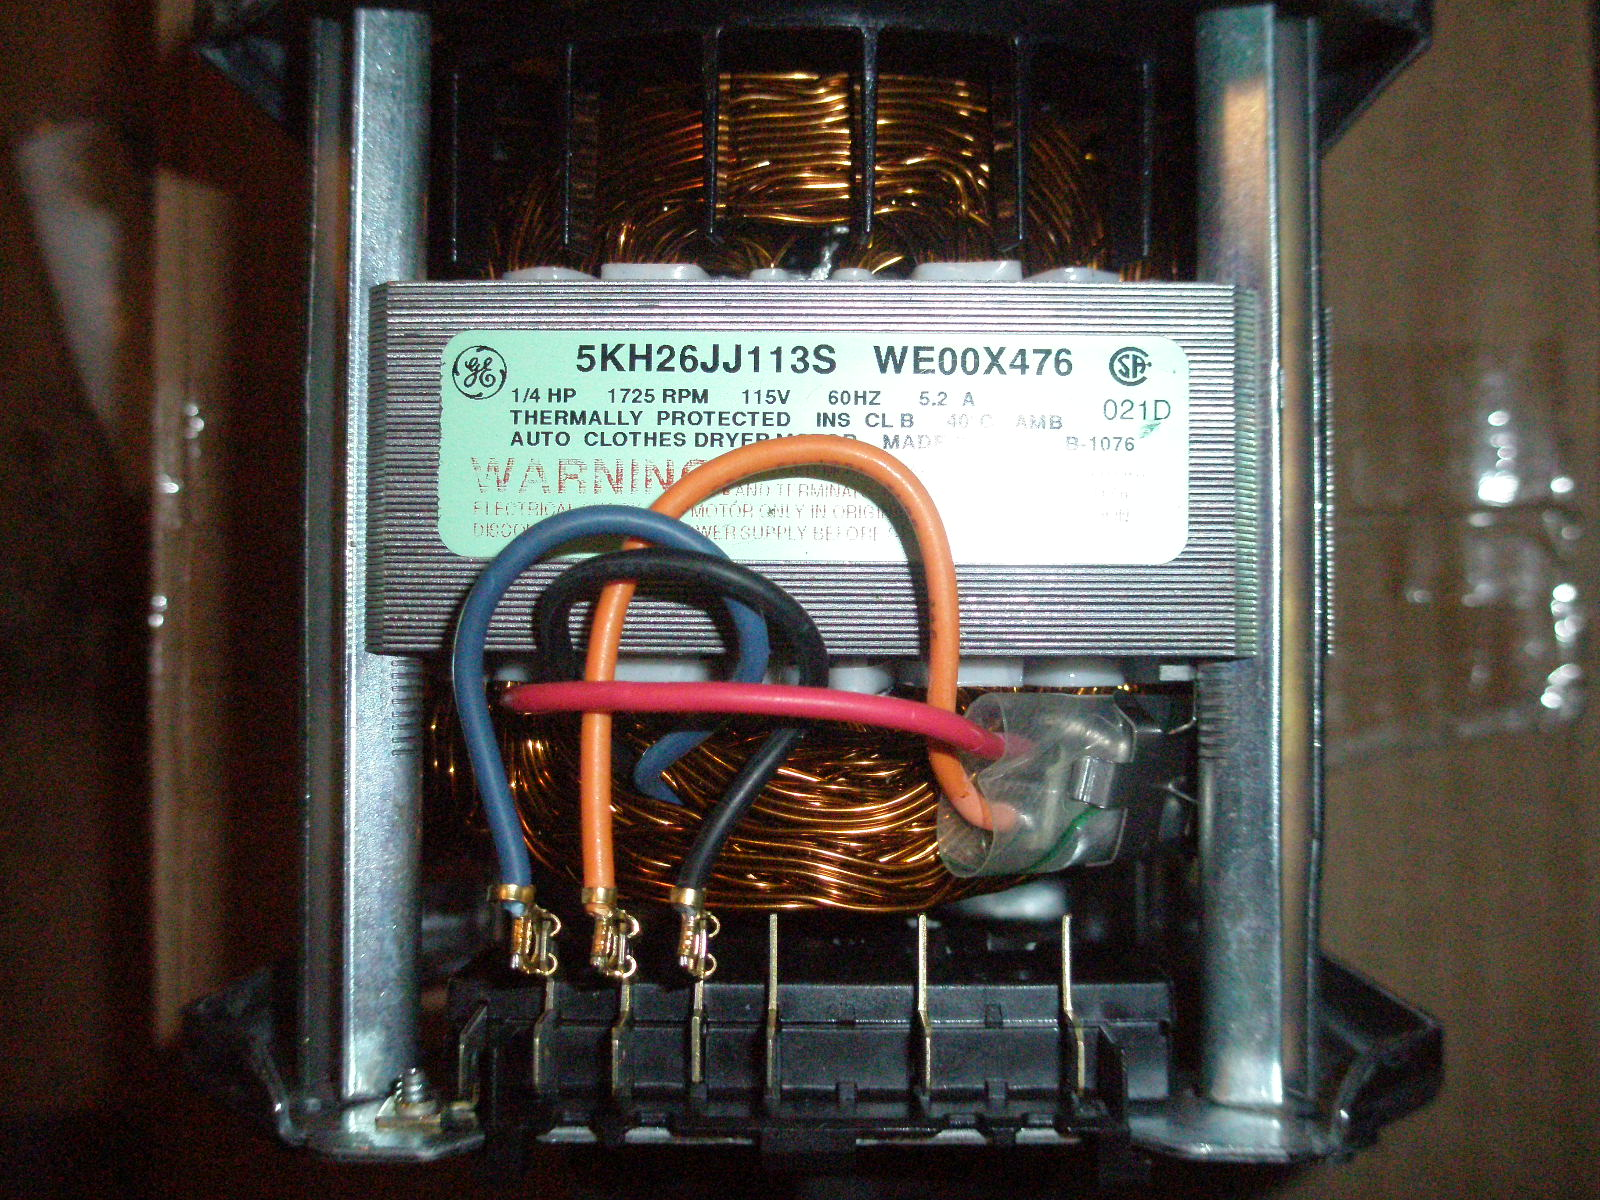 2010 12 31_193447_new_motor i have a replacement motor we00x476, for my ge dryer, but the Electric Dryer Receptacle Wiring-Diagram at gsmx.co